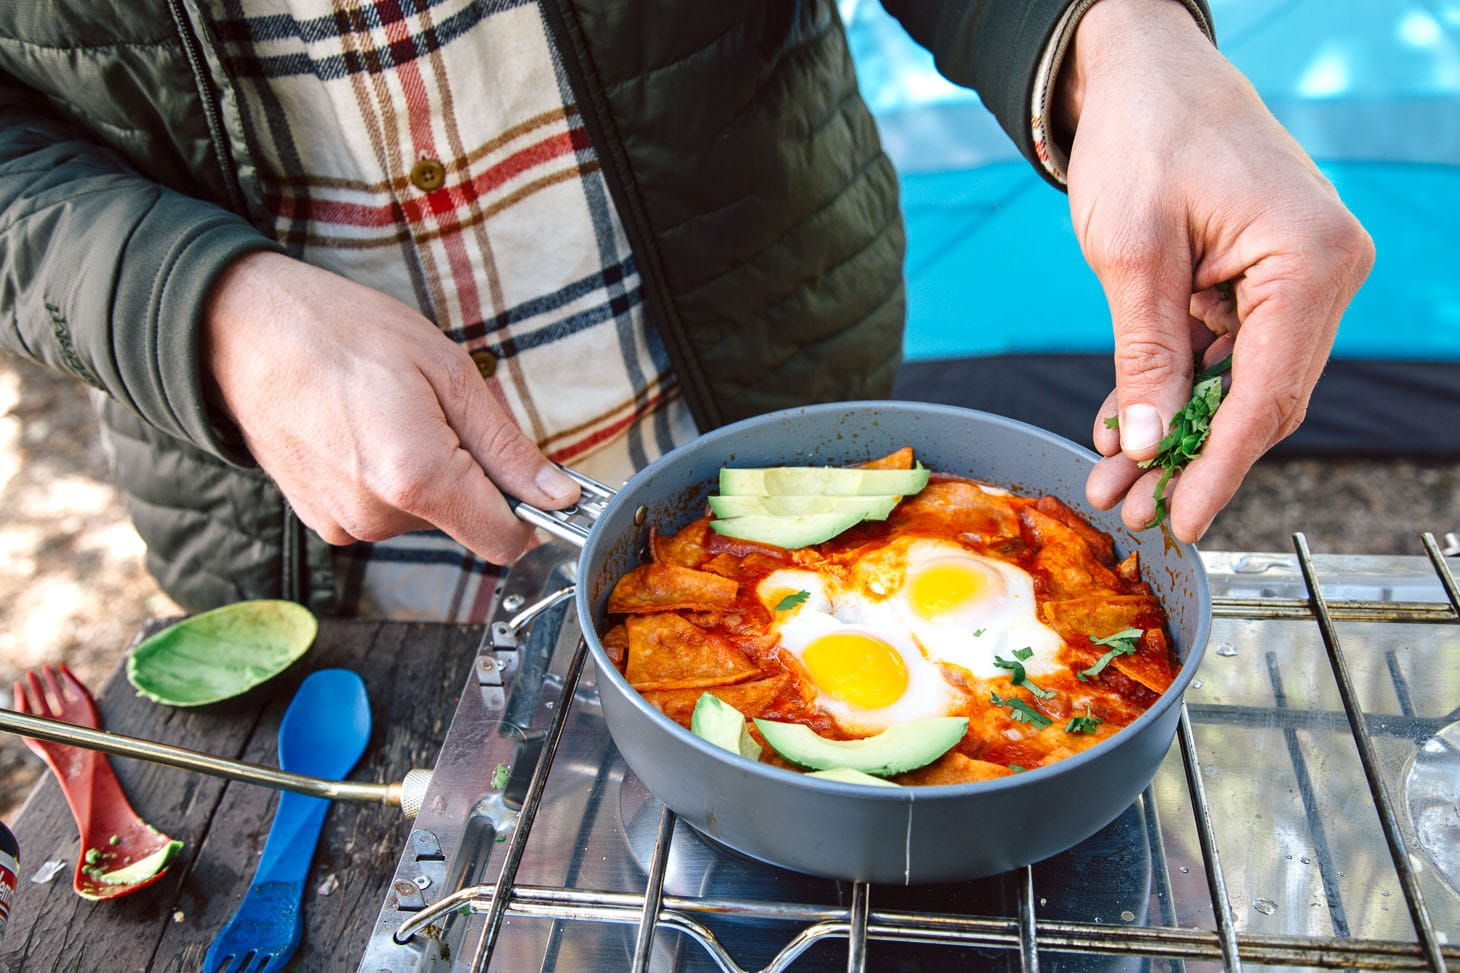 Michael is sprinkling chopped cilantro into a skillet full of Chilaquiles